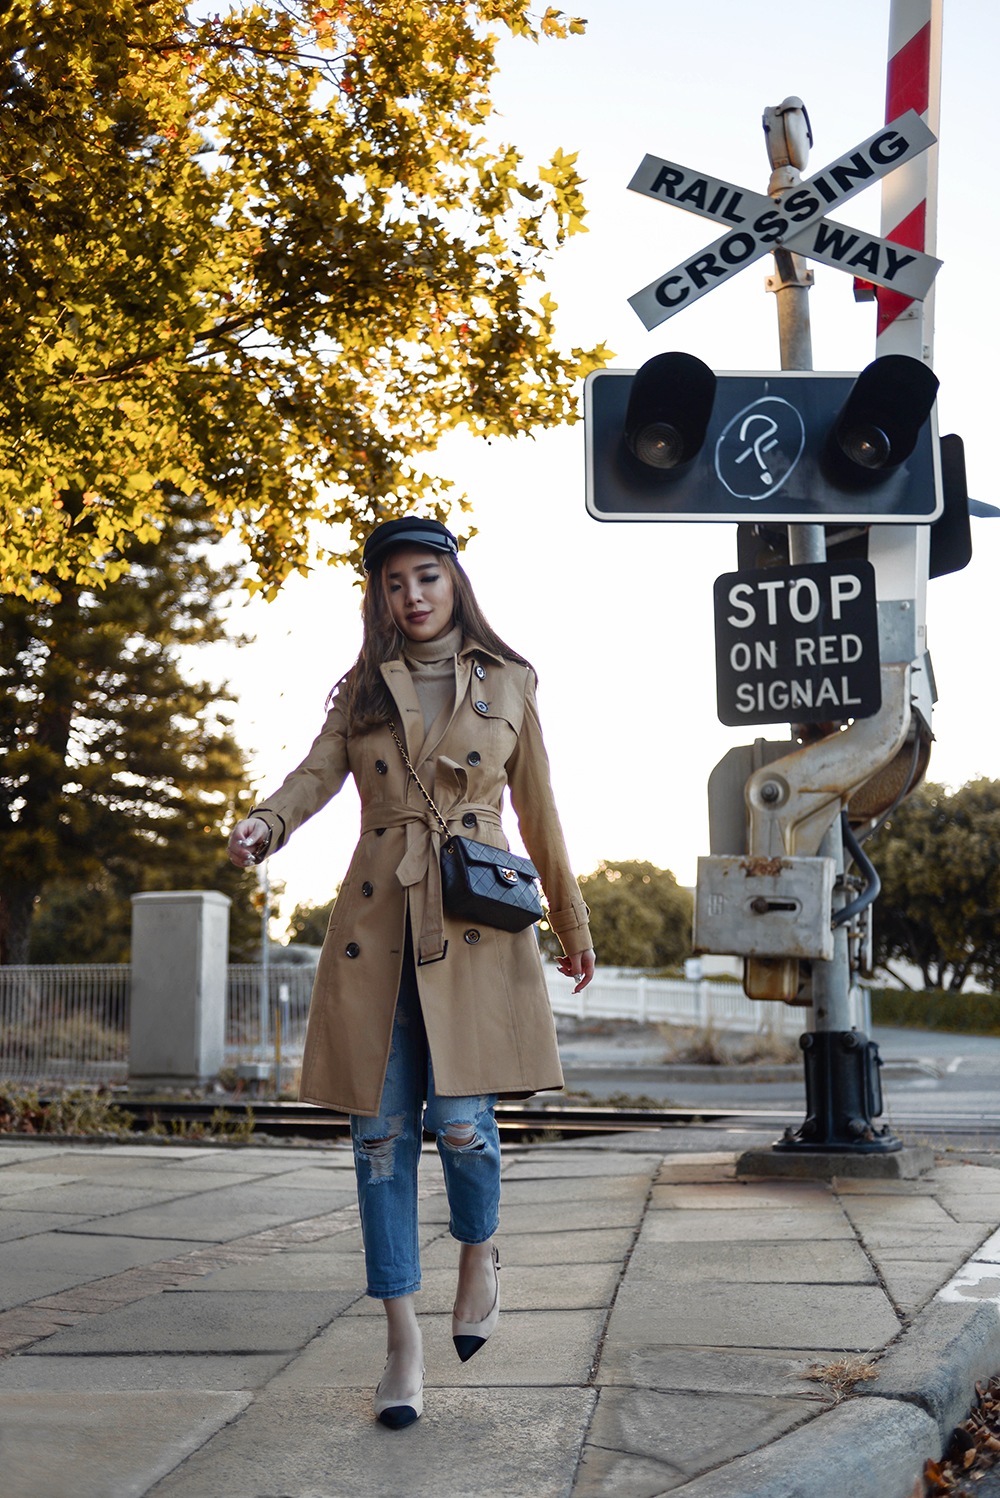 willabelle-ong-paledivision-street-style-fashion-travel-lifestyle-blog-singapore-australia-perth-trench-coat-blue-denim-jeans-editorial-fashionweek-1